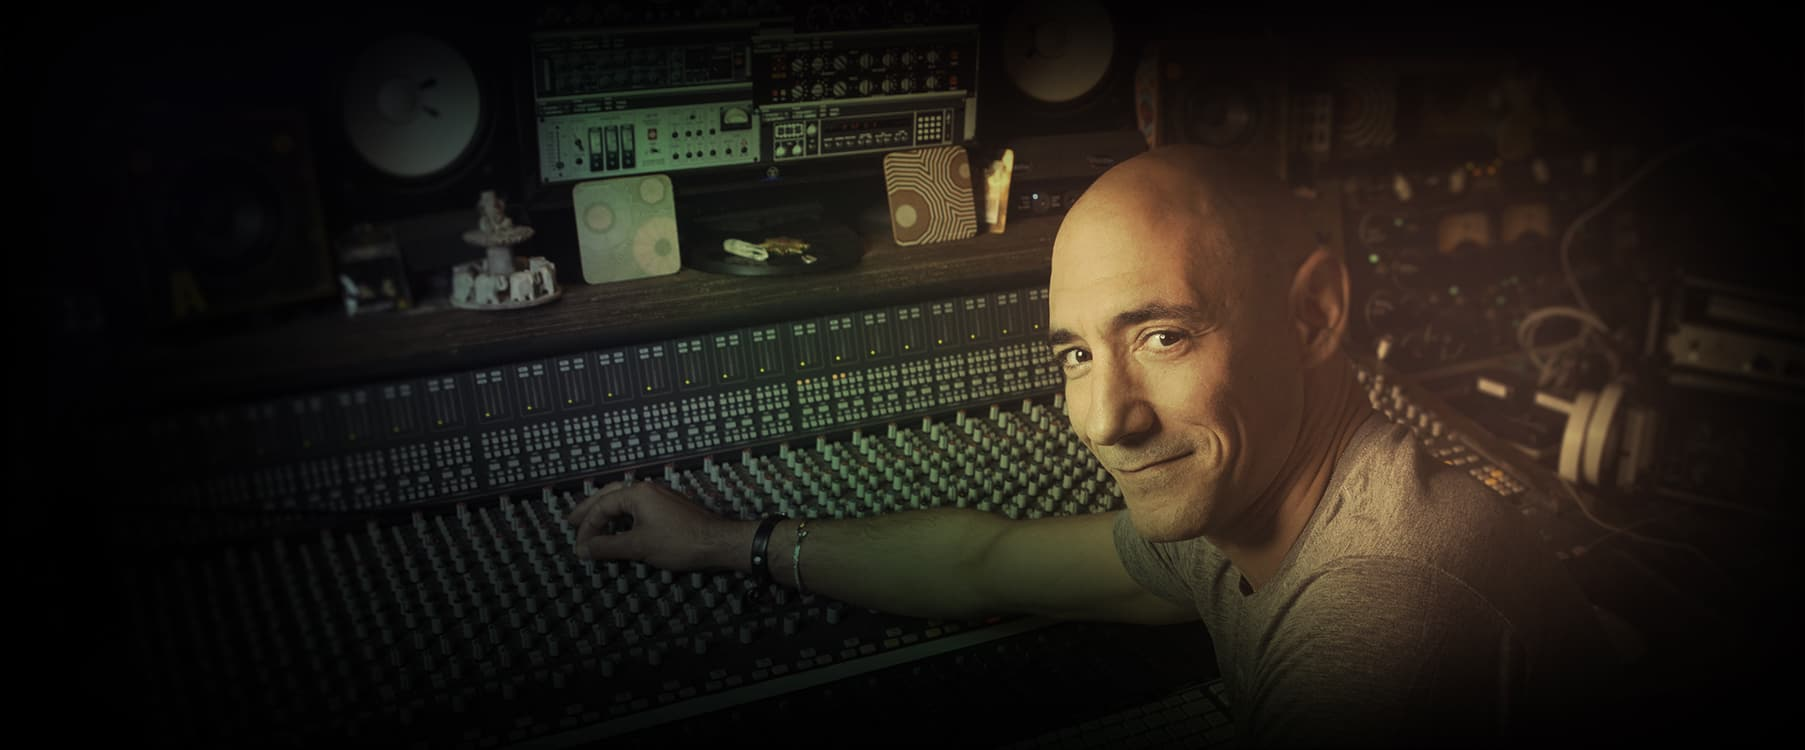 Producer Neil Mclellan Mixes The Prodigy with UAD Plug-Ins